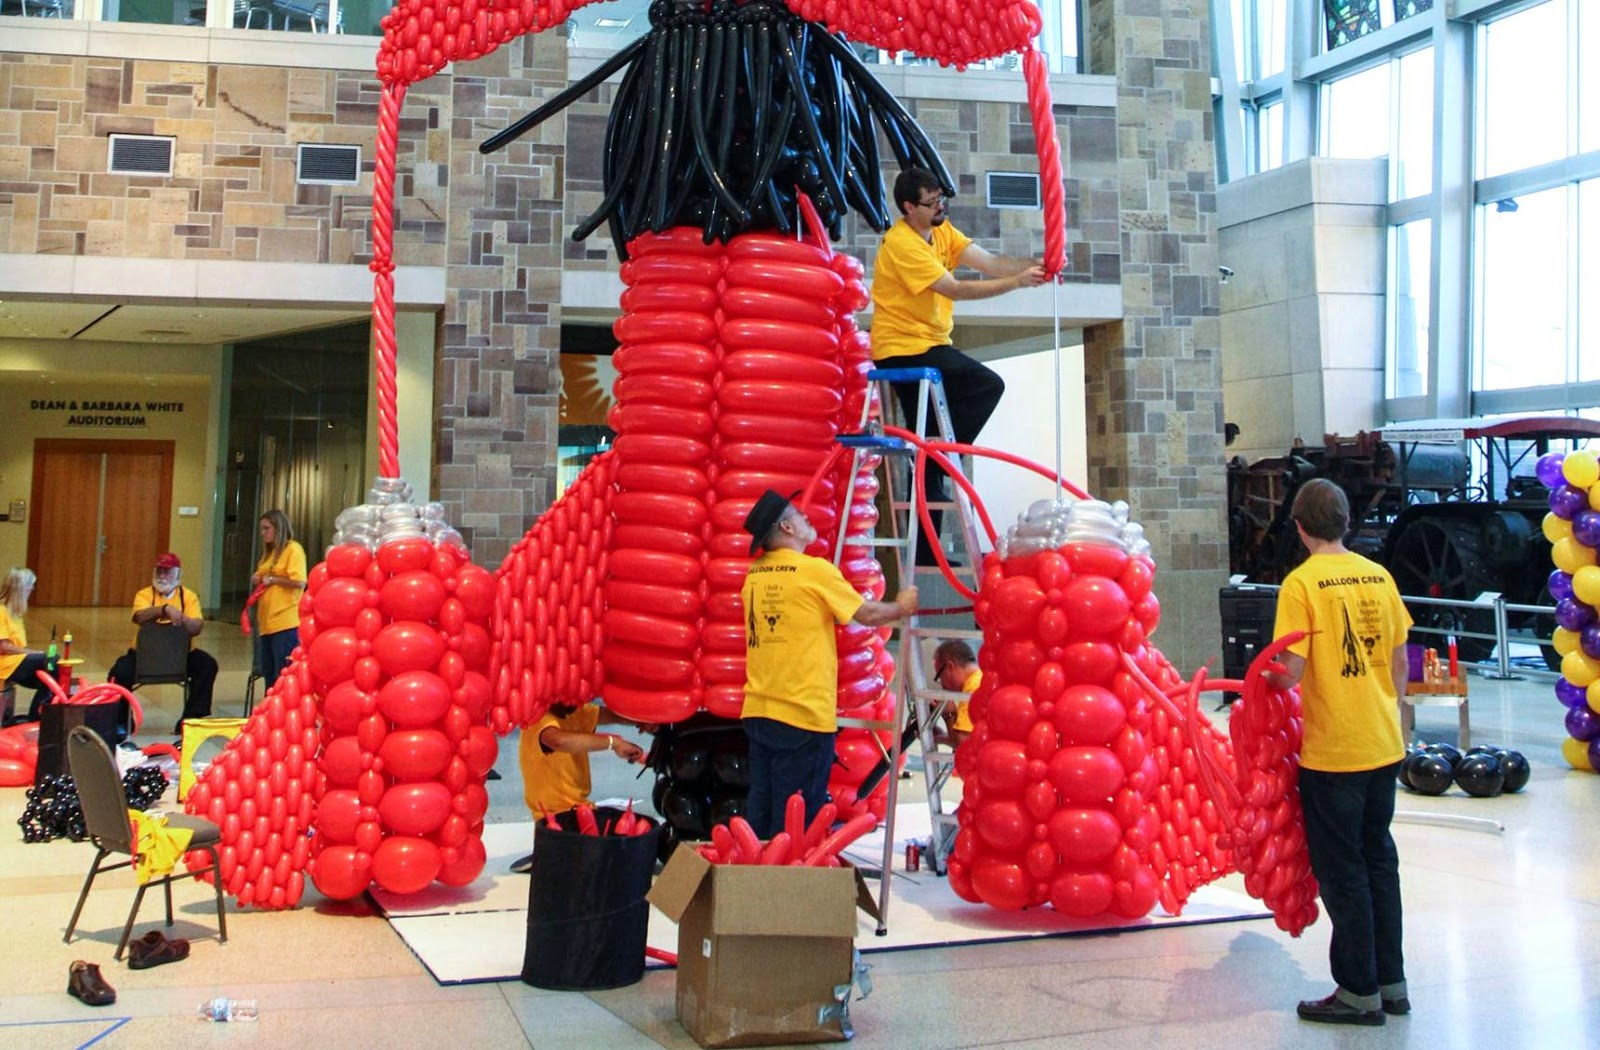 Thunderbirds 3 Recreated in Balloons to Celebrate the Show's 50th Anniversary